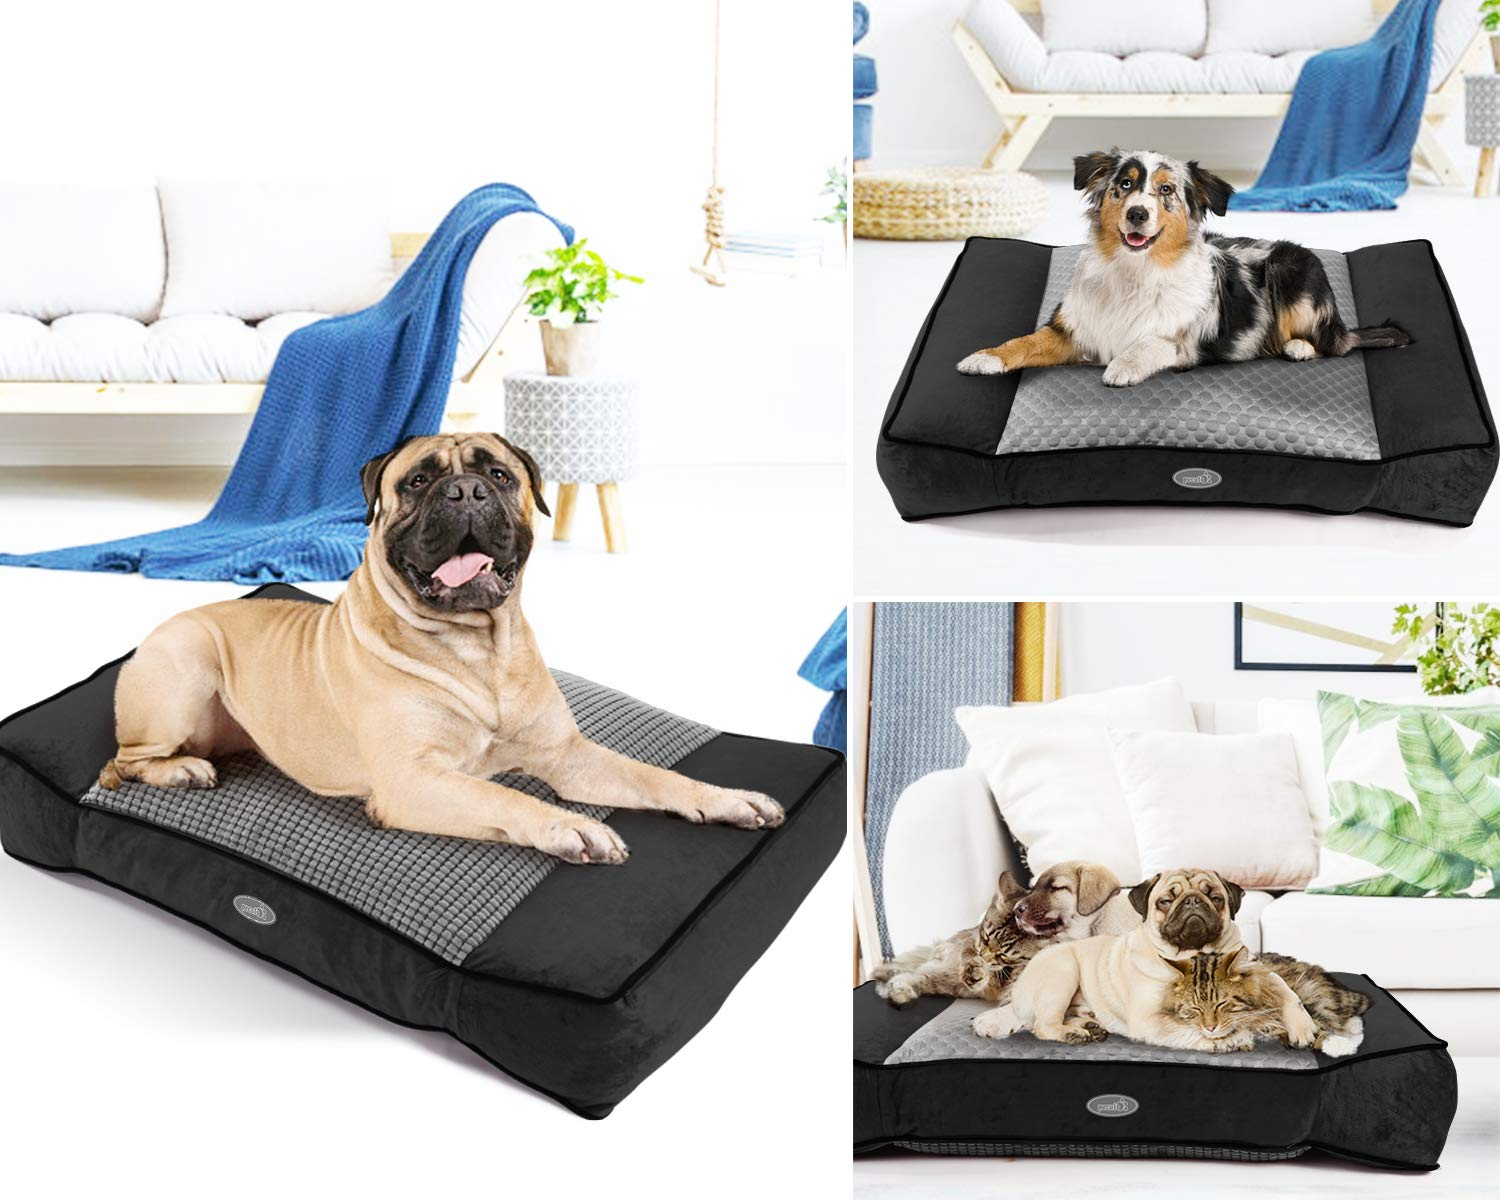 Pecute Dog Bed, Warm Plush & Cool Silk Double-Sided Pet Bed Four Seasons Available, Orthopedic Memory Foam Care for Cervical Spine, Dog Lounge Bed Sofa with Removable Cover Washable (40x27 in, Black)